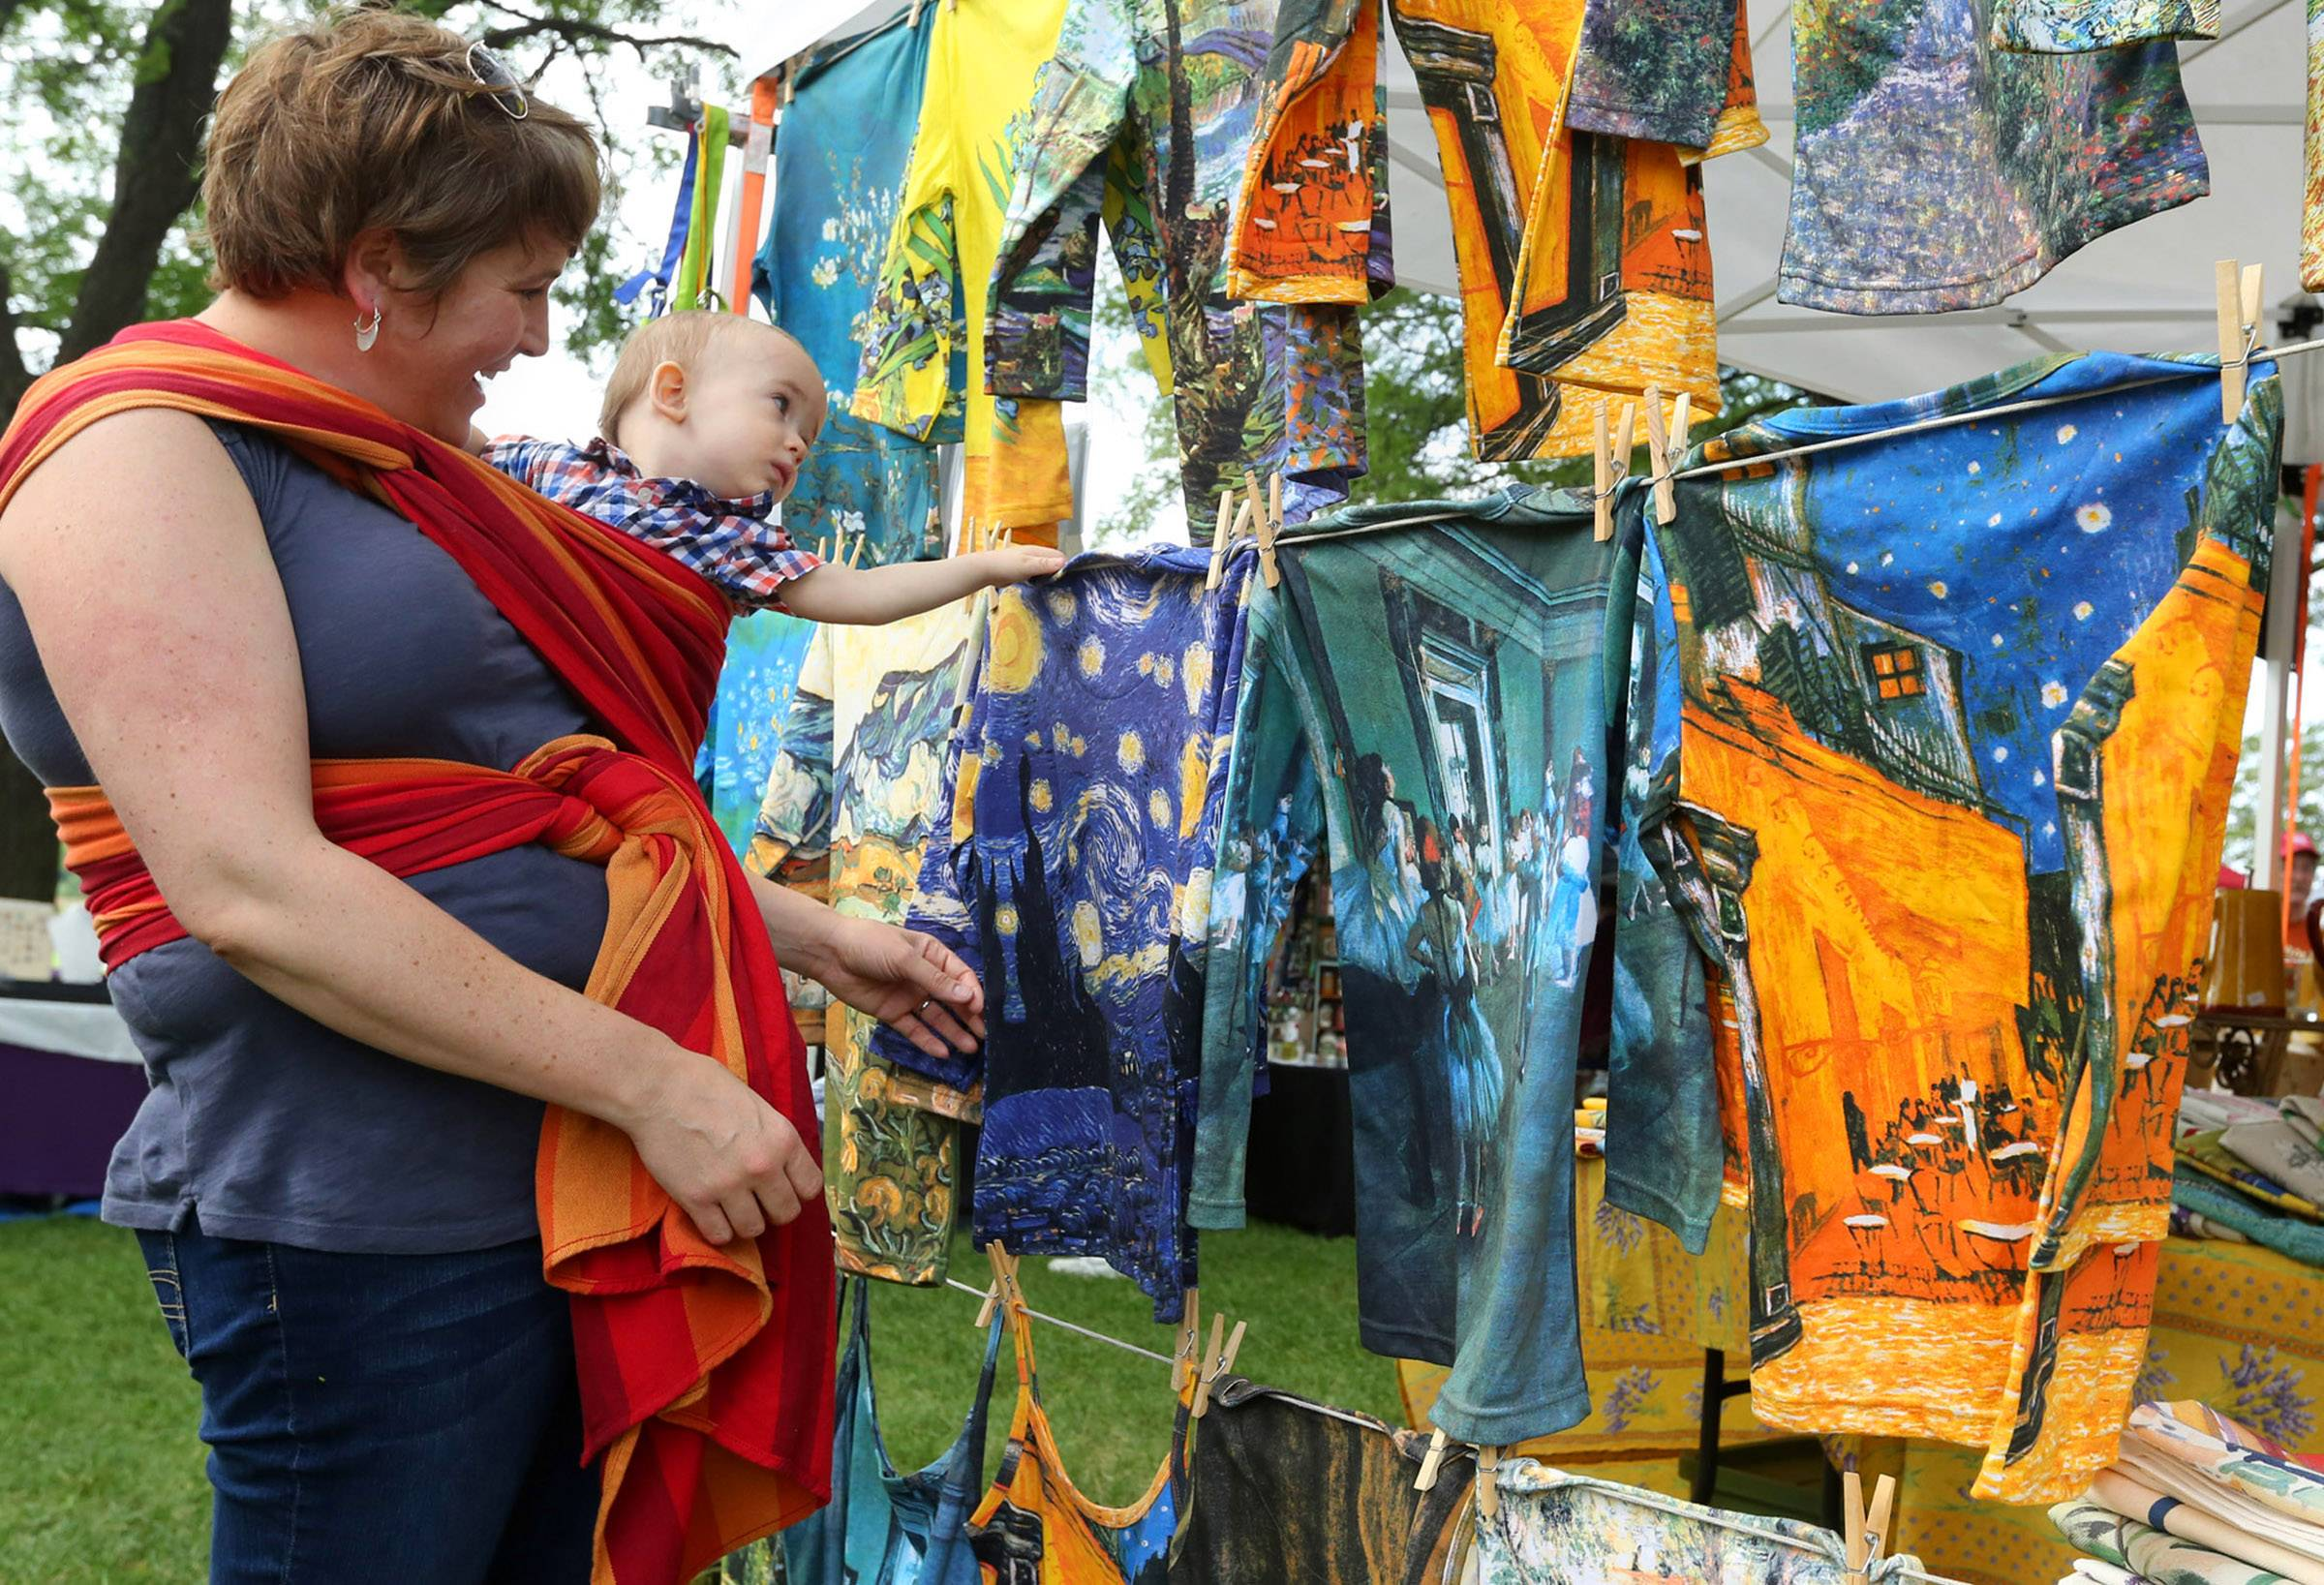 Meredith Entler's 1-year-old son, Duncan, is mesmerized Sunday by colorful famous painting printed on shirts at Elizabeth Eischeid's Cadeaux de Madeleine booth at the annual French Connection Day celebration at Cantigny Park in Wheaton.